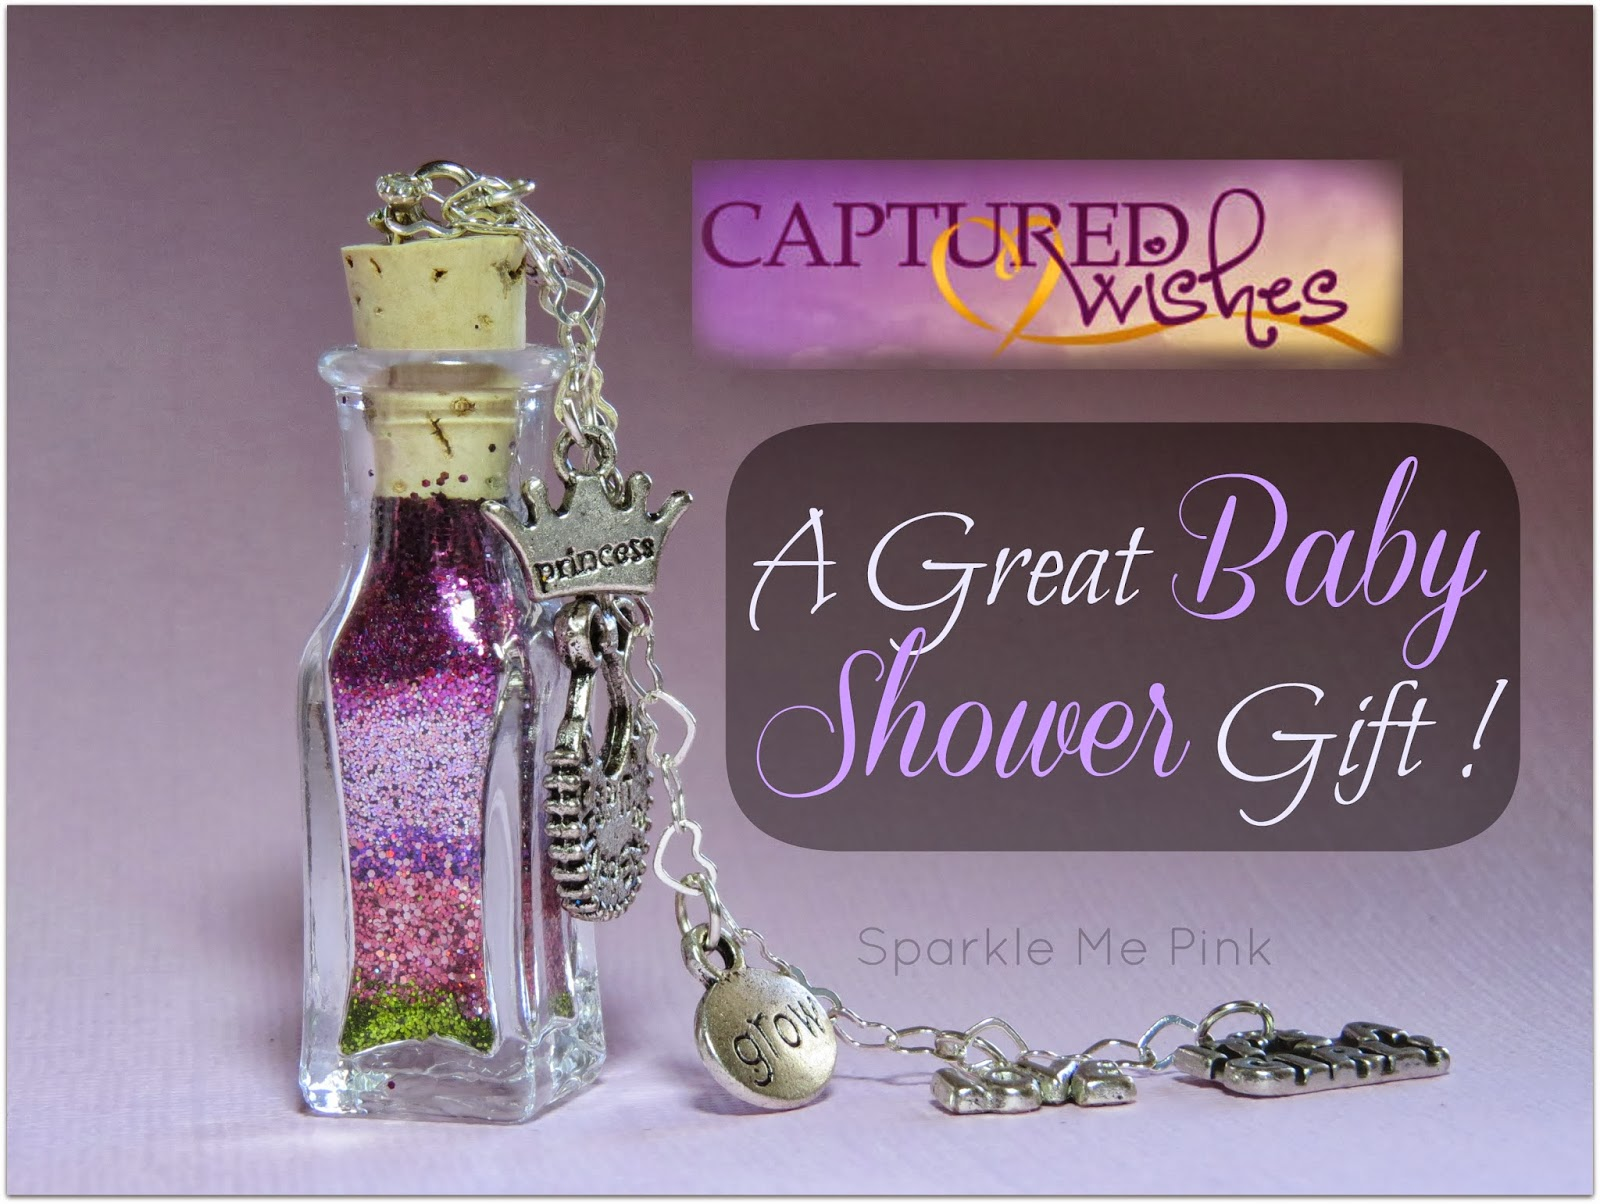 captured wishes gift for new baby review great baby shower gift